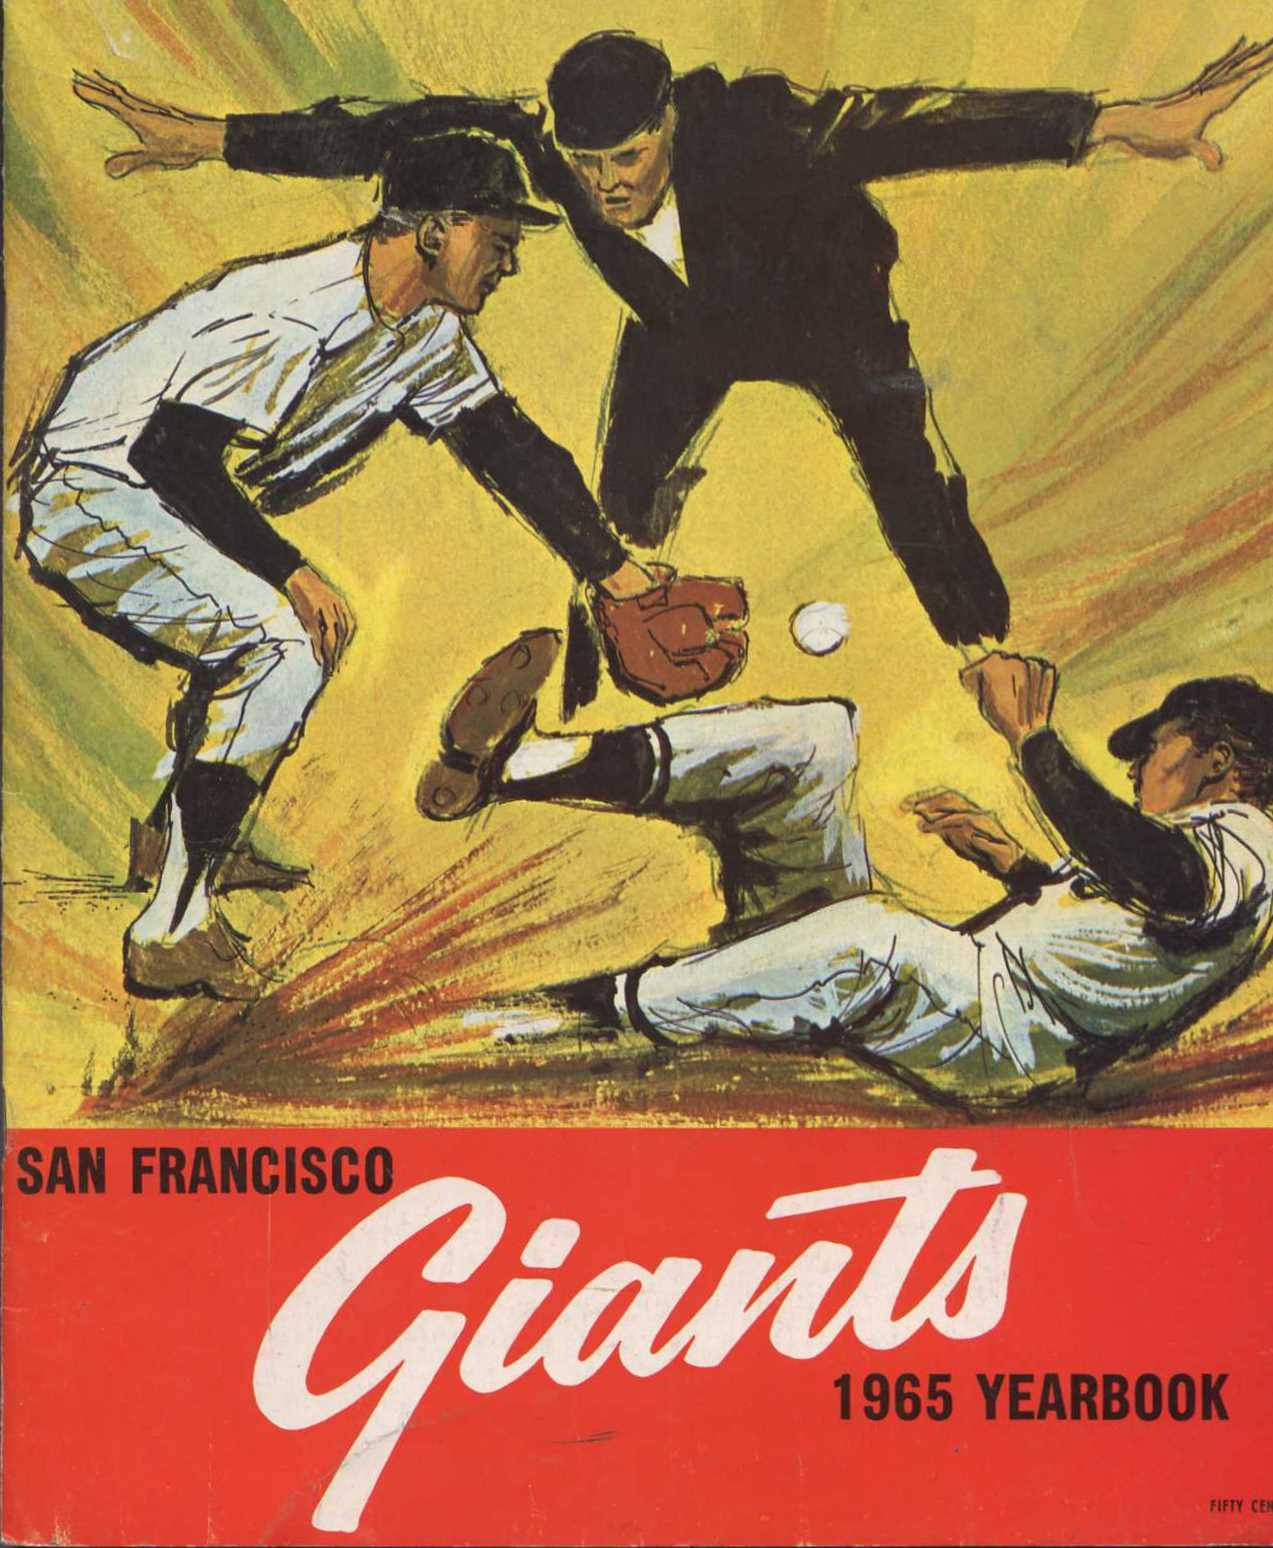 1965 San Francisco Giants Yearbook - Painting of a play at second